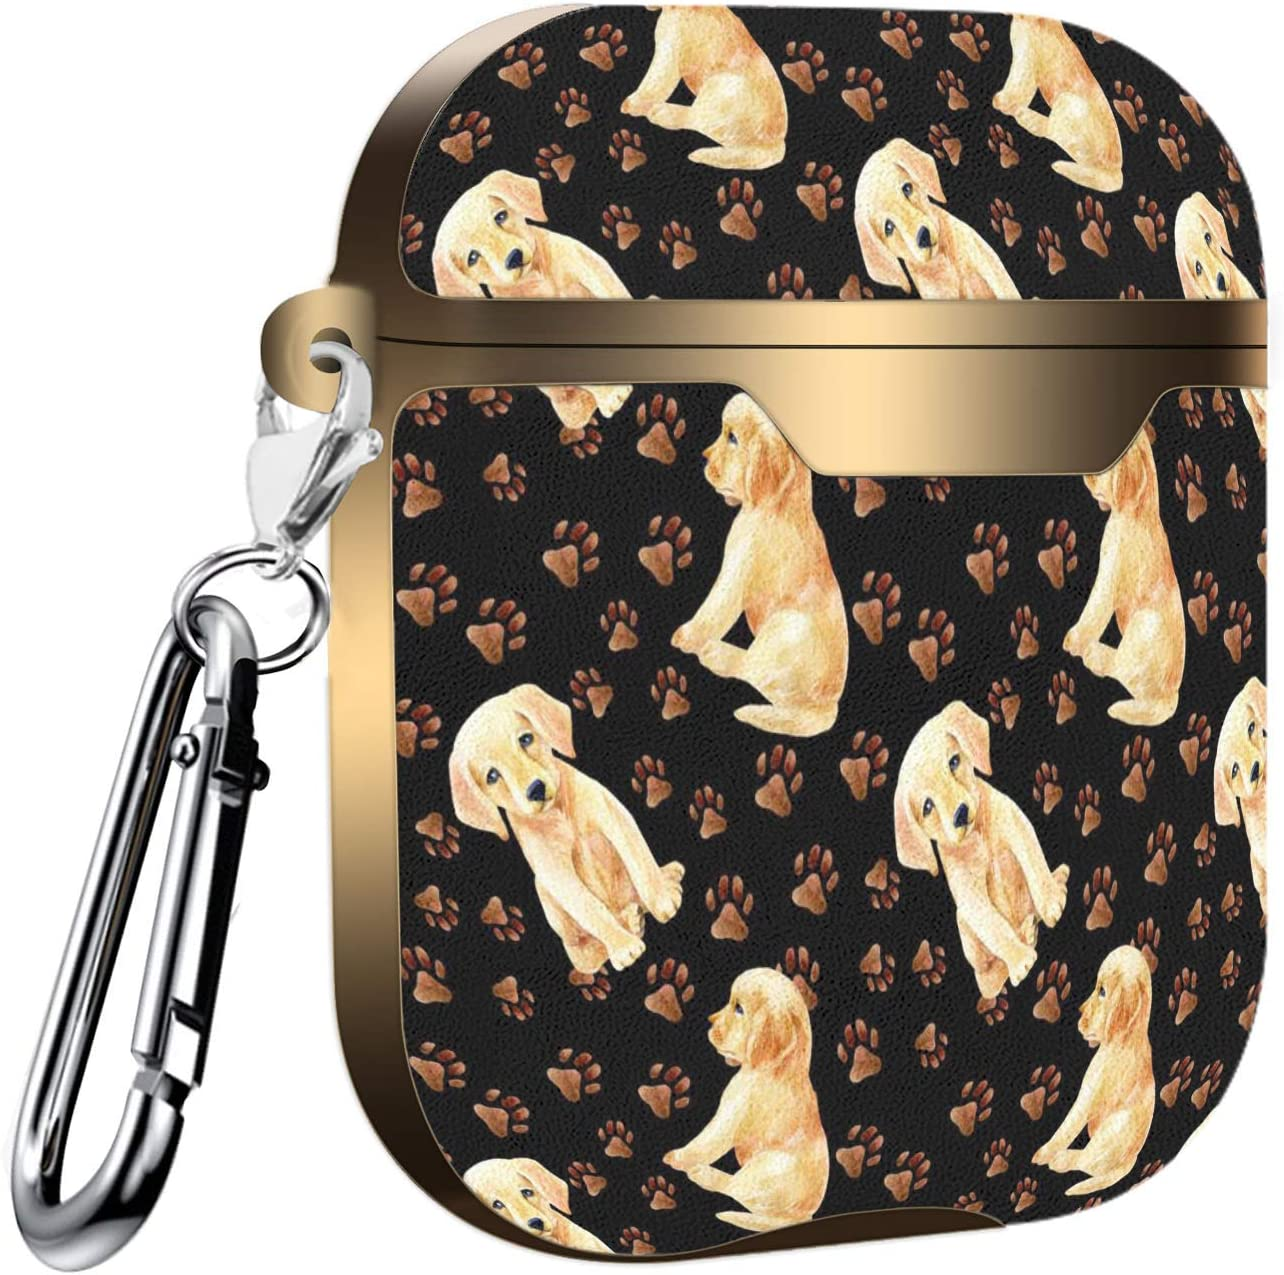 Labrador Puppy and Paw Pattern Slim Form Fitted Printing Pattern Cover Case with Carabiner Compatible with Airpods 1 and AirPods 2